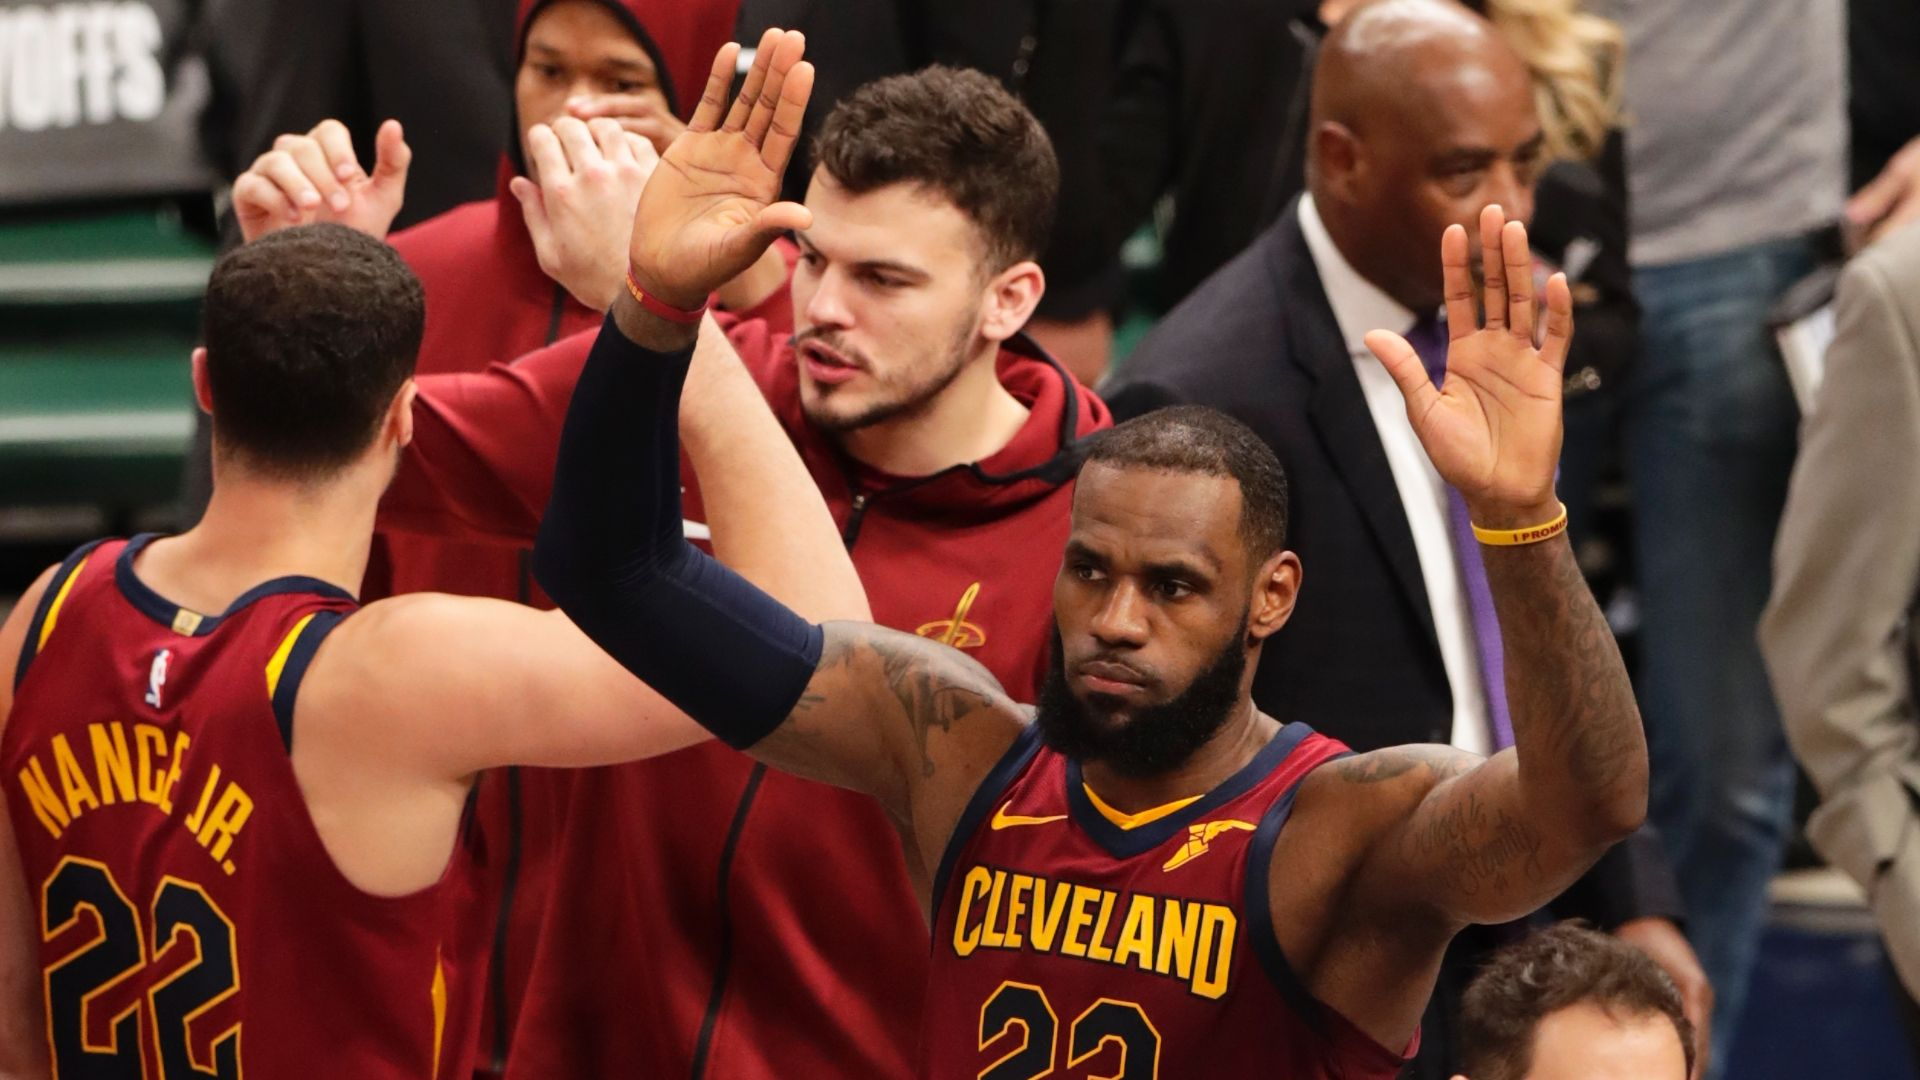 LeBron takes over to help Cavs even series